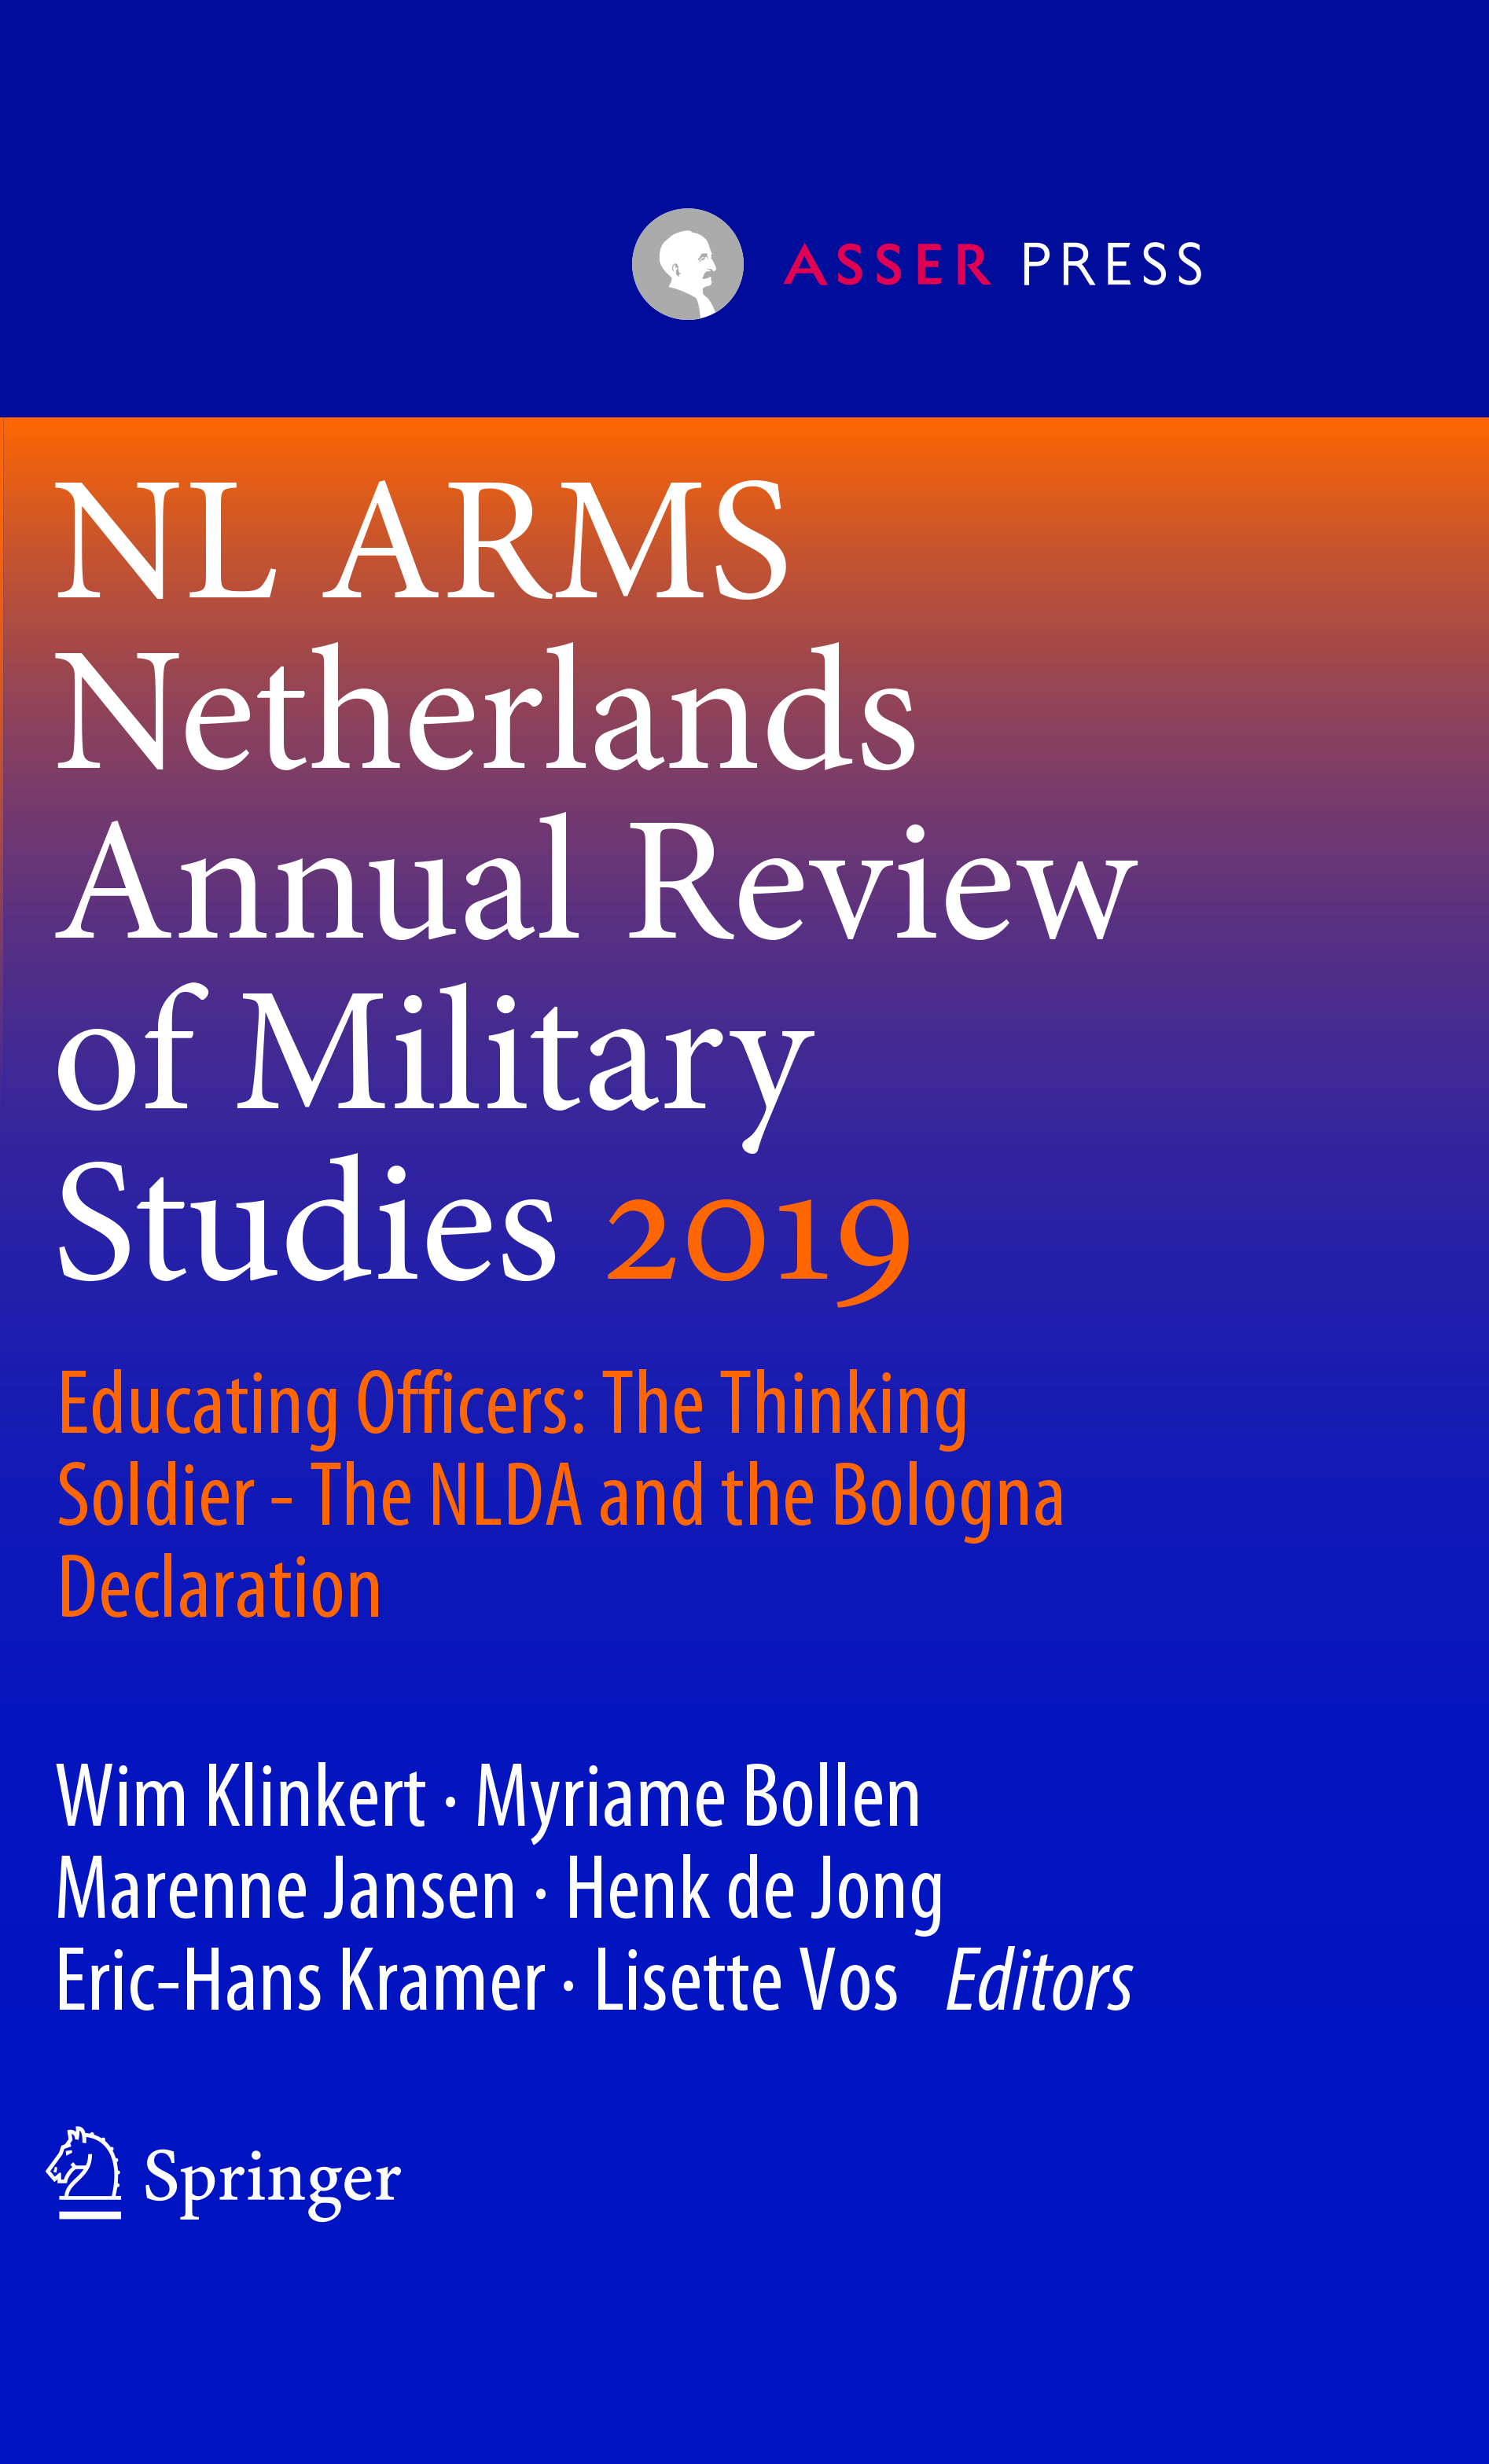 NL ARMS 2019 - Educating Officers: The Thinking Soldier - The NLDA and the Bologna Declaration